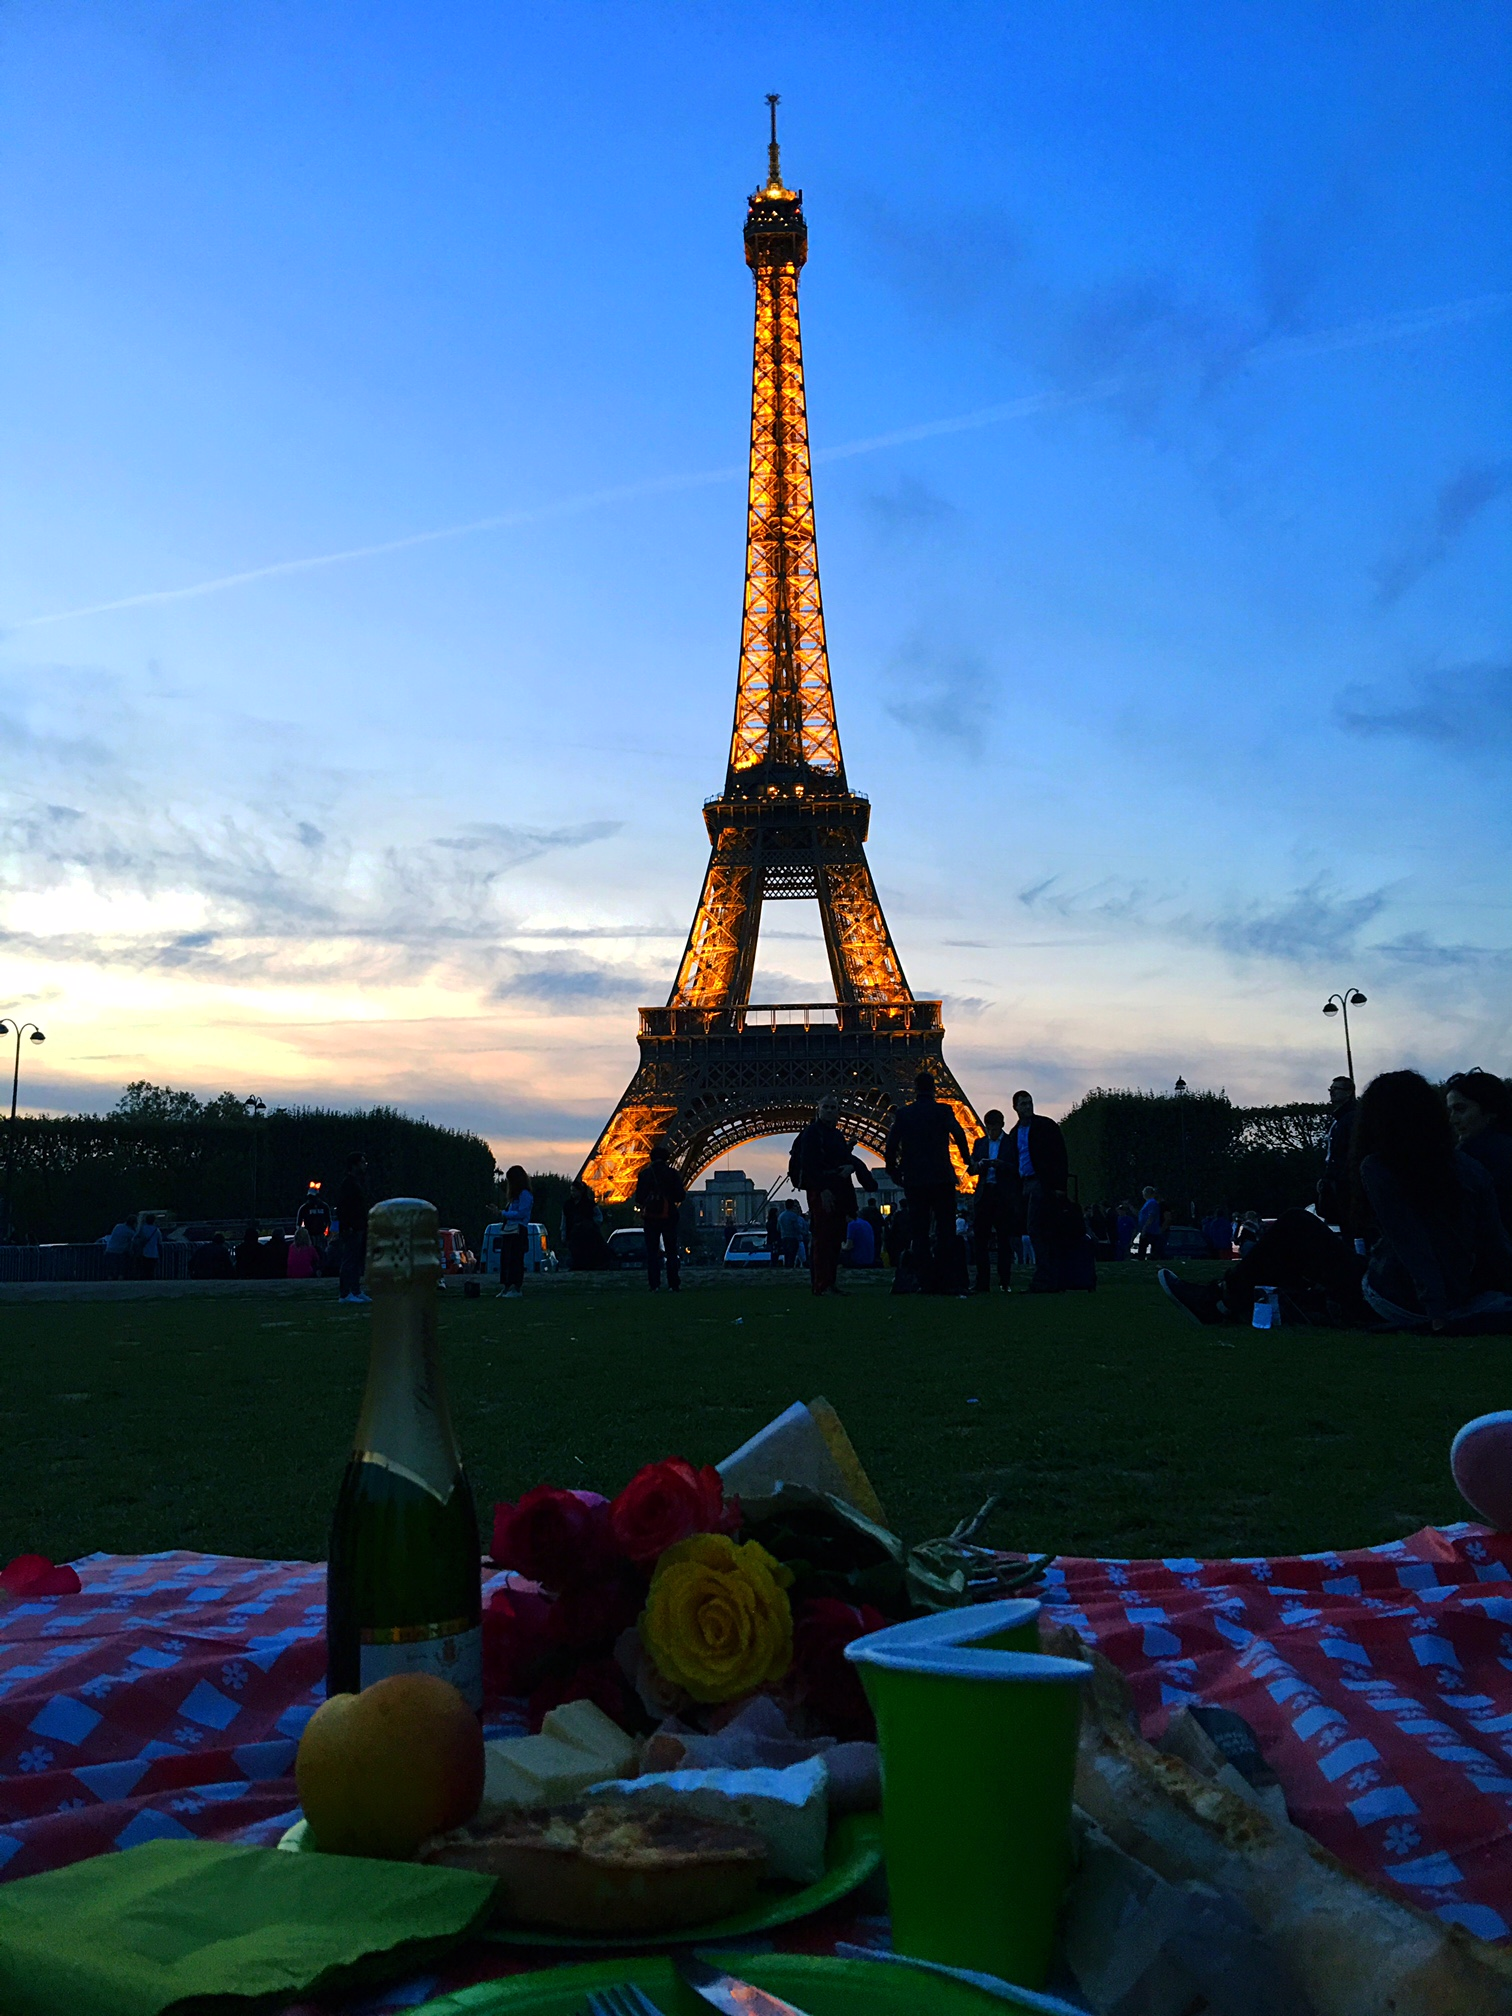 Eiffel Tower picnic at night